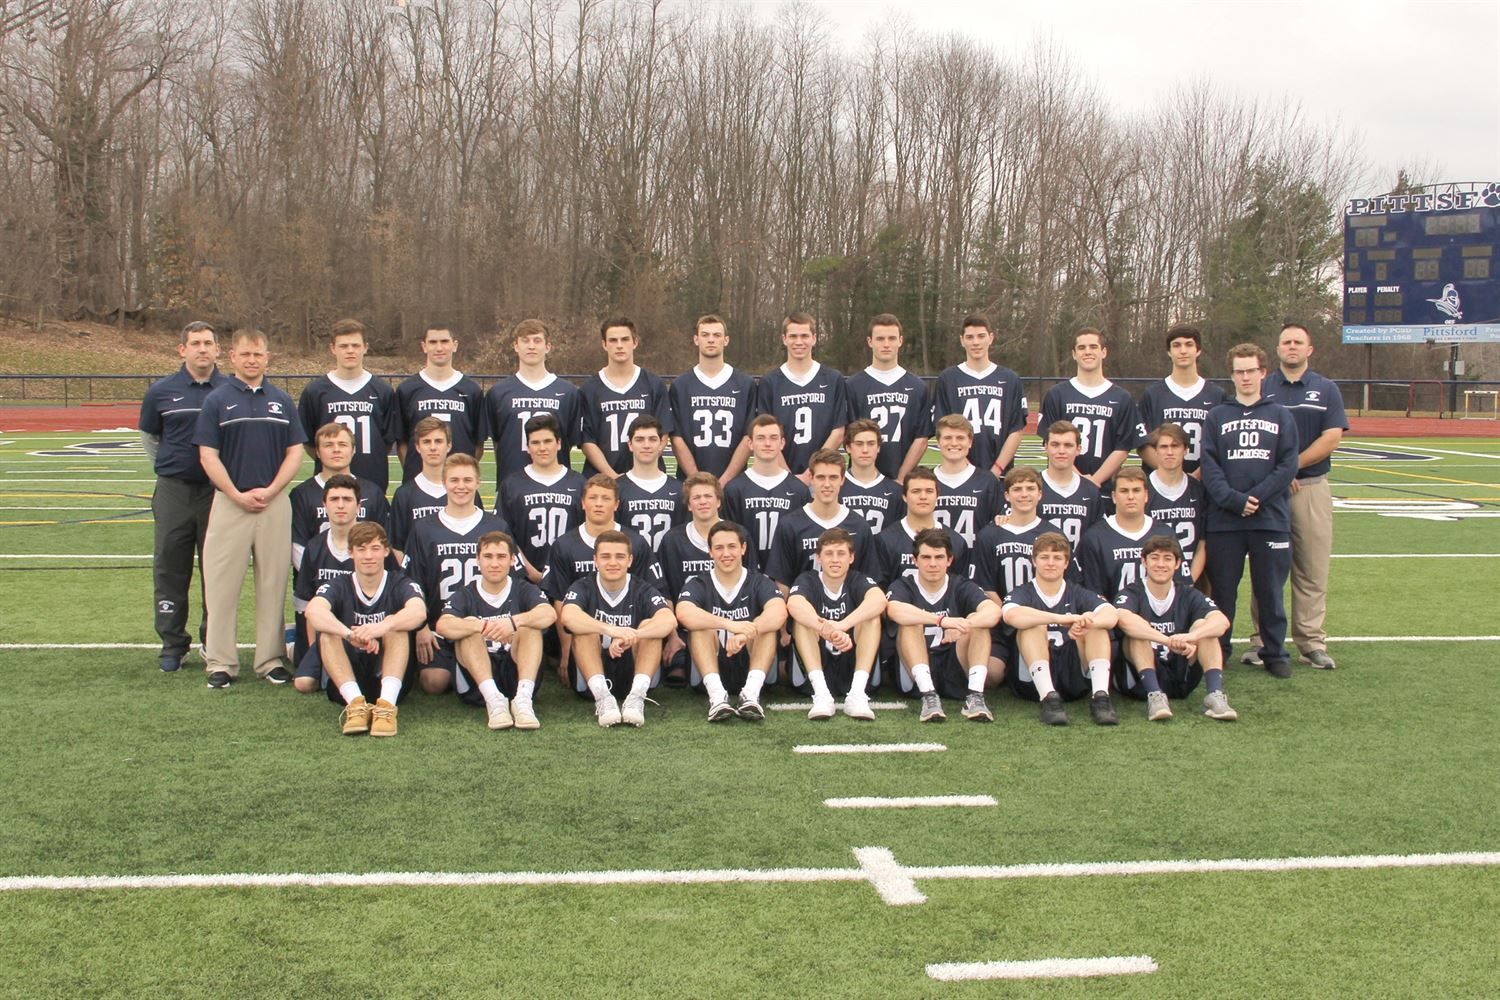 Pittsford Sutherland - Pittsford Boys Lacrosse